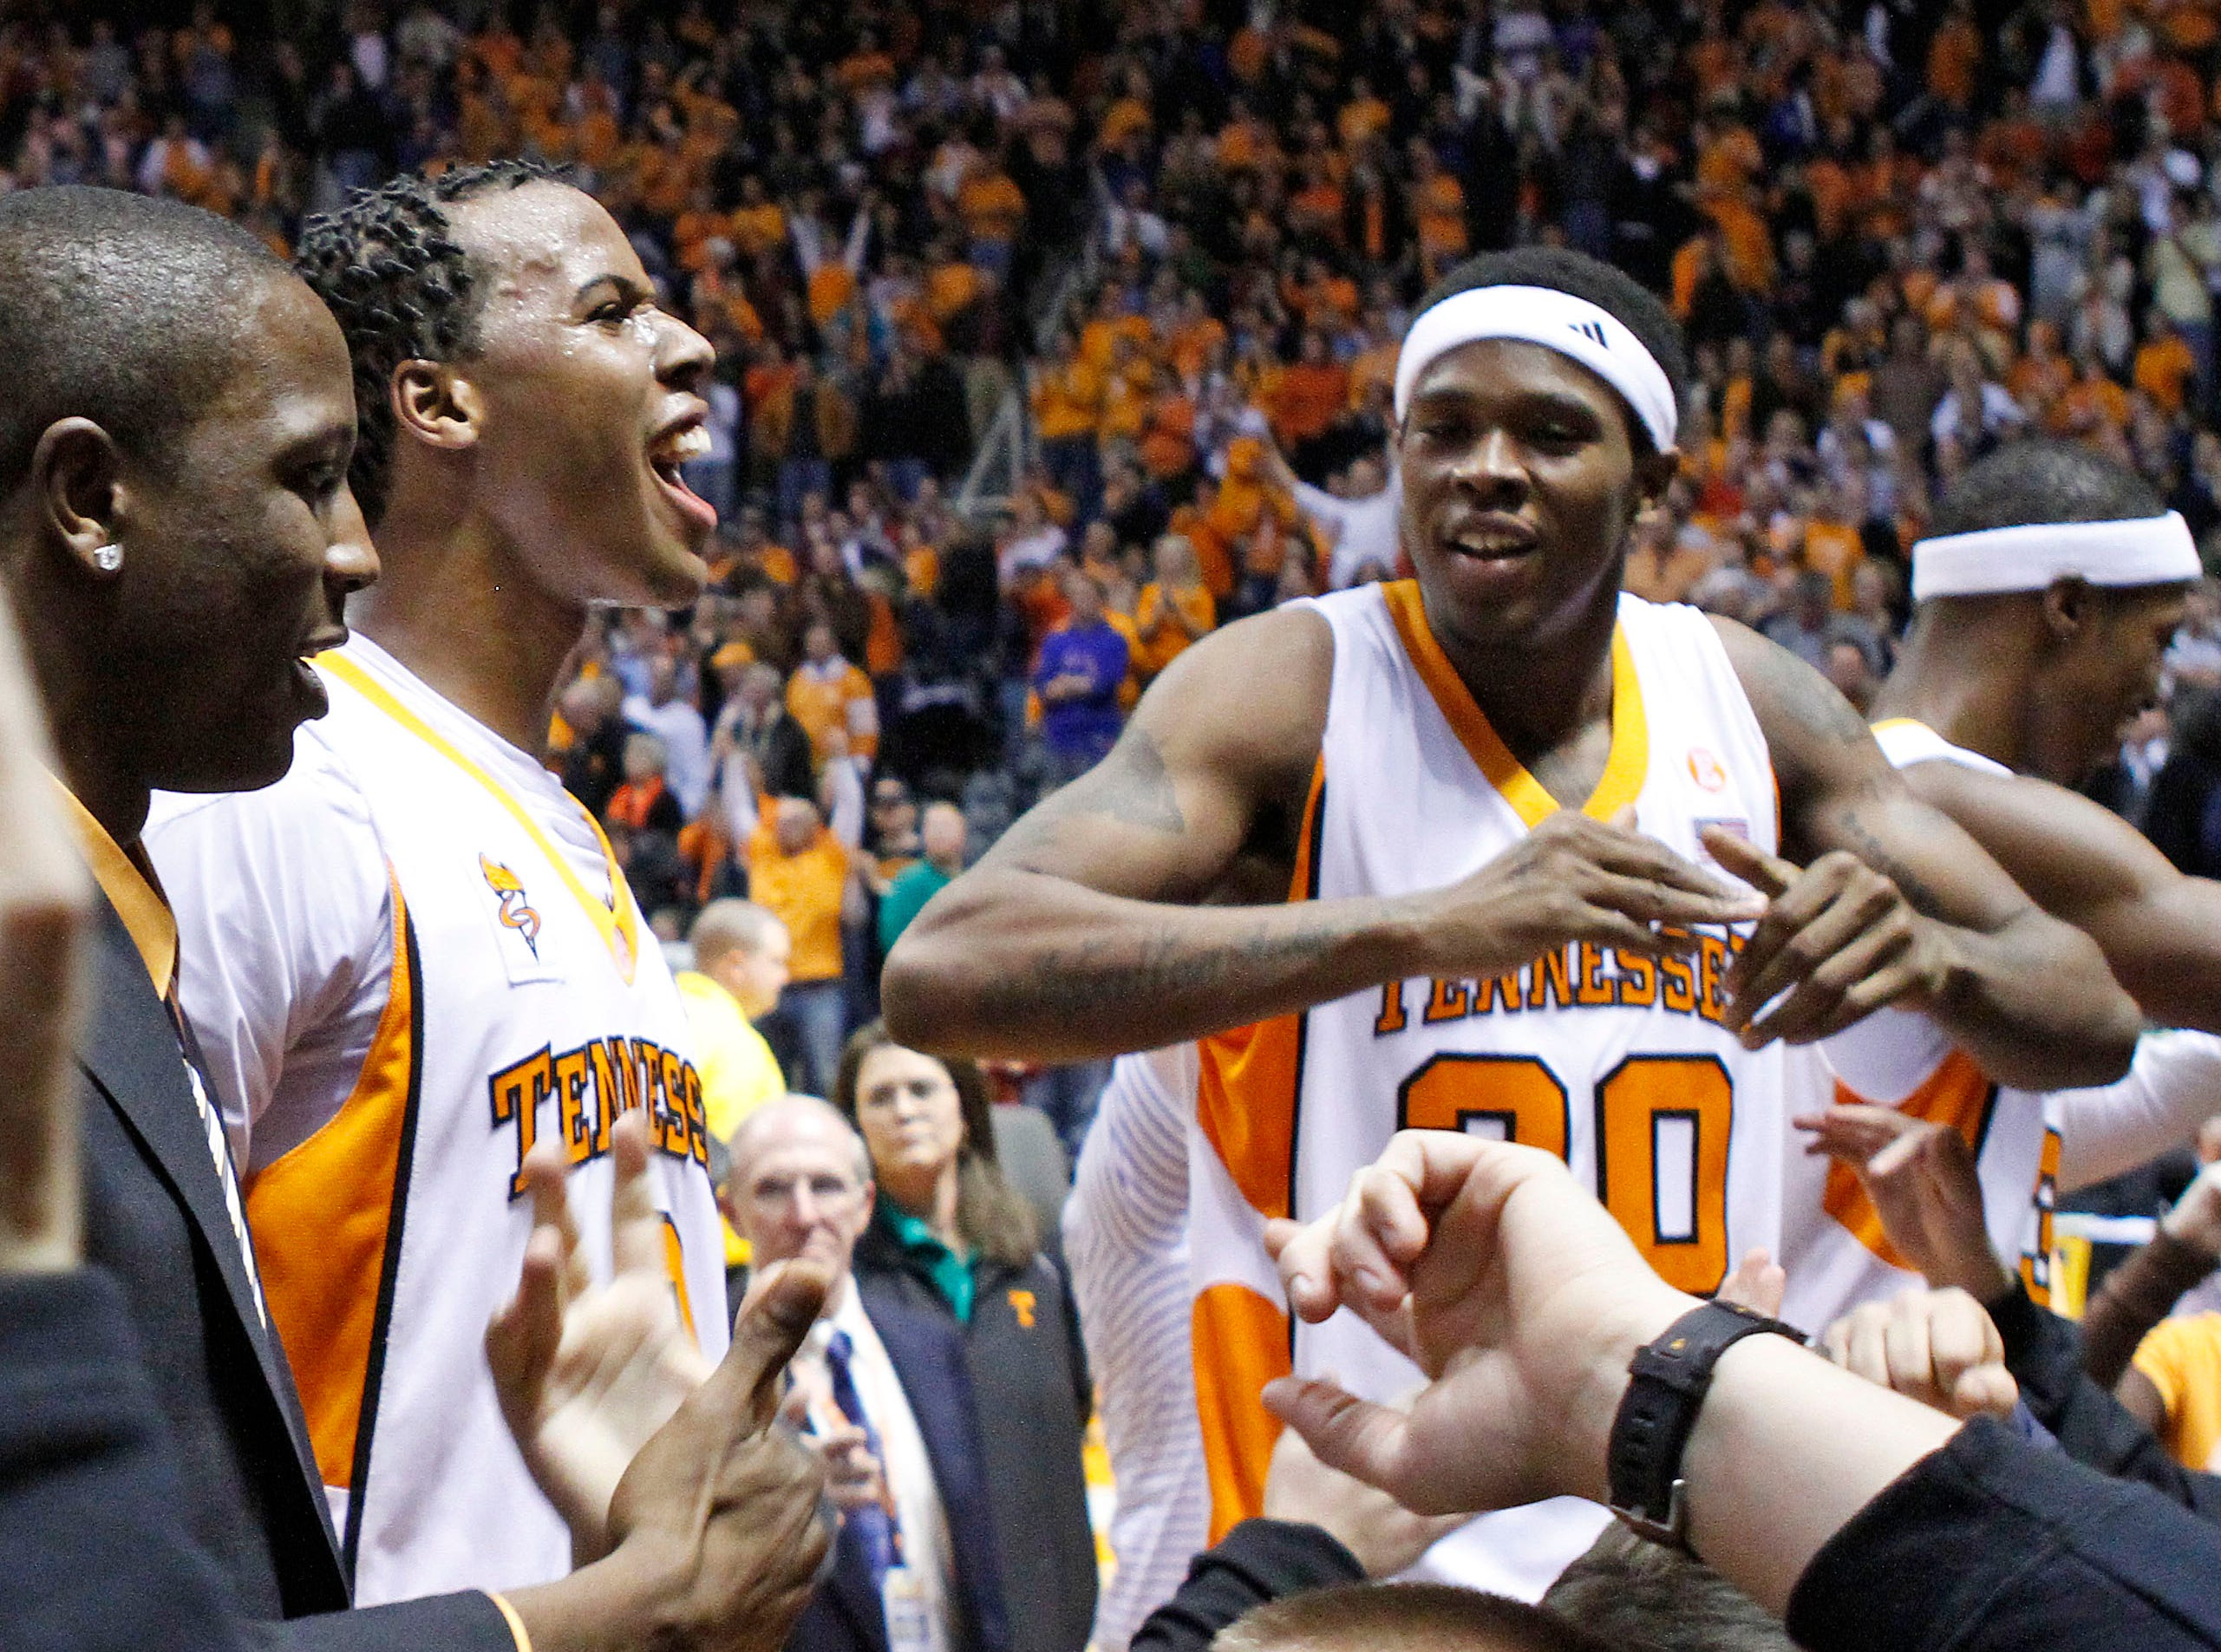 Tennessee's Scotty Hopson, right, and Renaldo Woolridge (0) celebrate with fans after Tennessee defeated Kansas 76-68 in an NCAA college basketball game Sunday, Jan. 10, 2010, in Knoxville, Tenn.